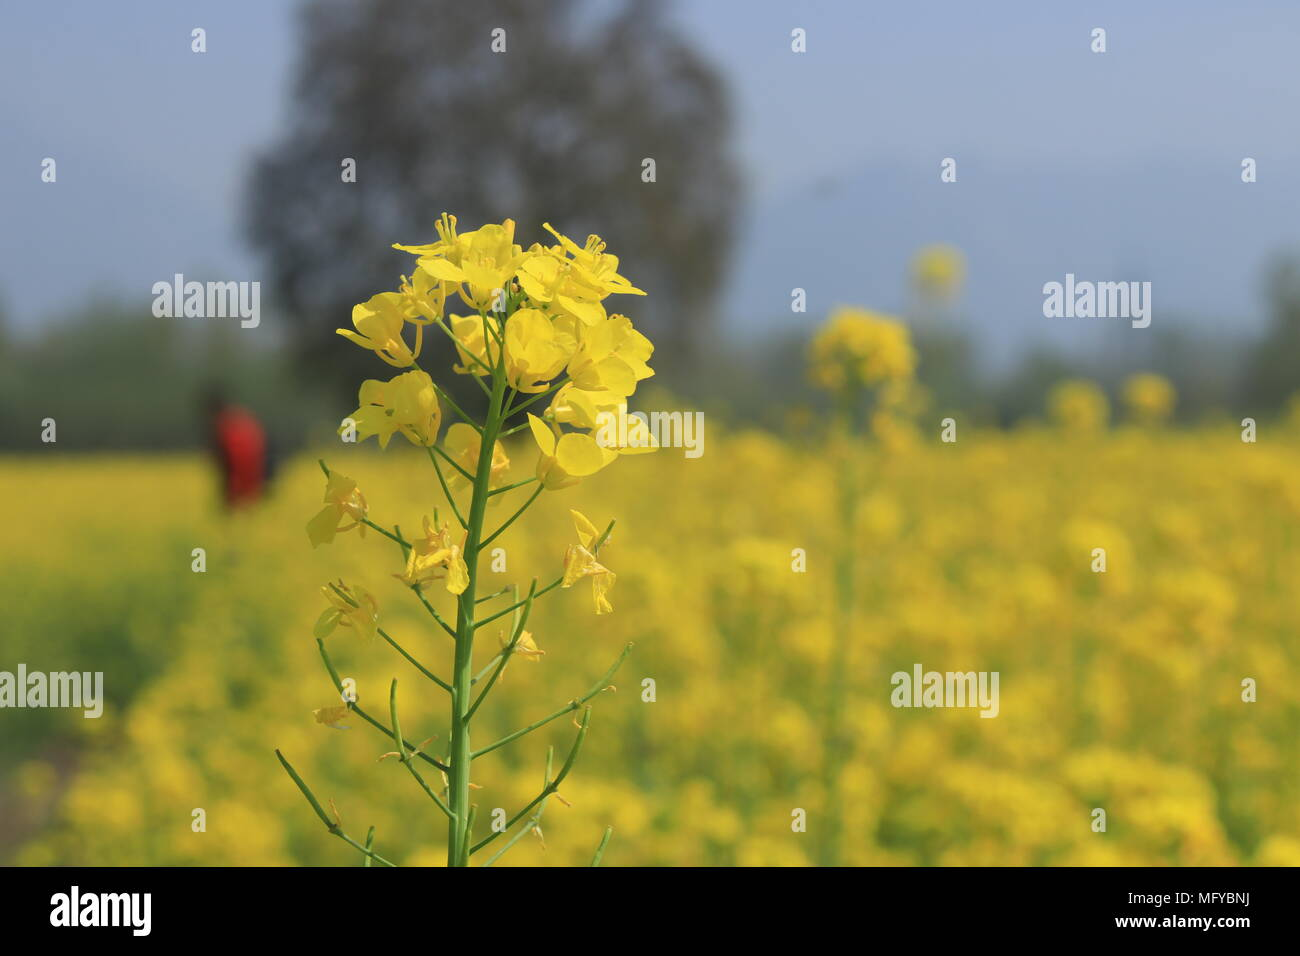 Srinagar india 31st mar 2018 the yellow flowers called mustard the yellow flowers called mustard flowers have started to blossom in srinagar kashmirstard is an annual crop mustard sowing is done in the months of mightylinksfo